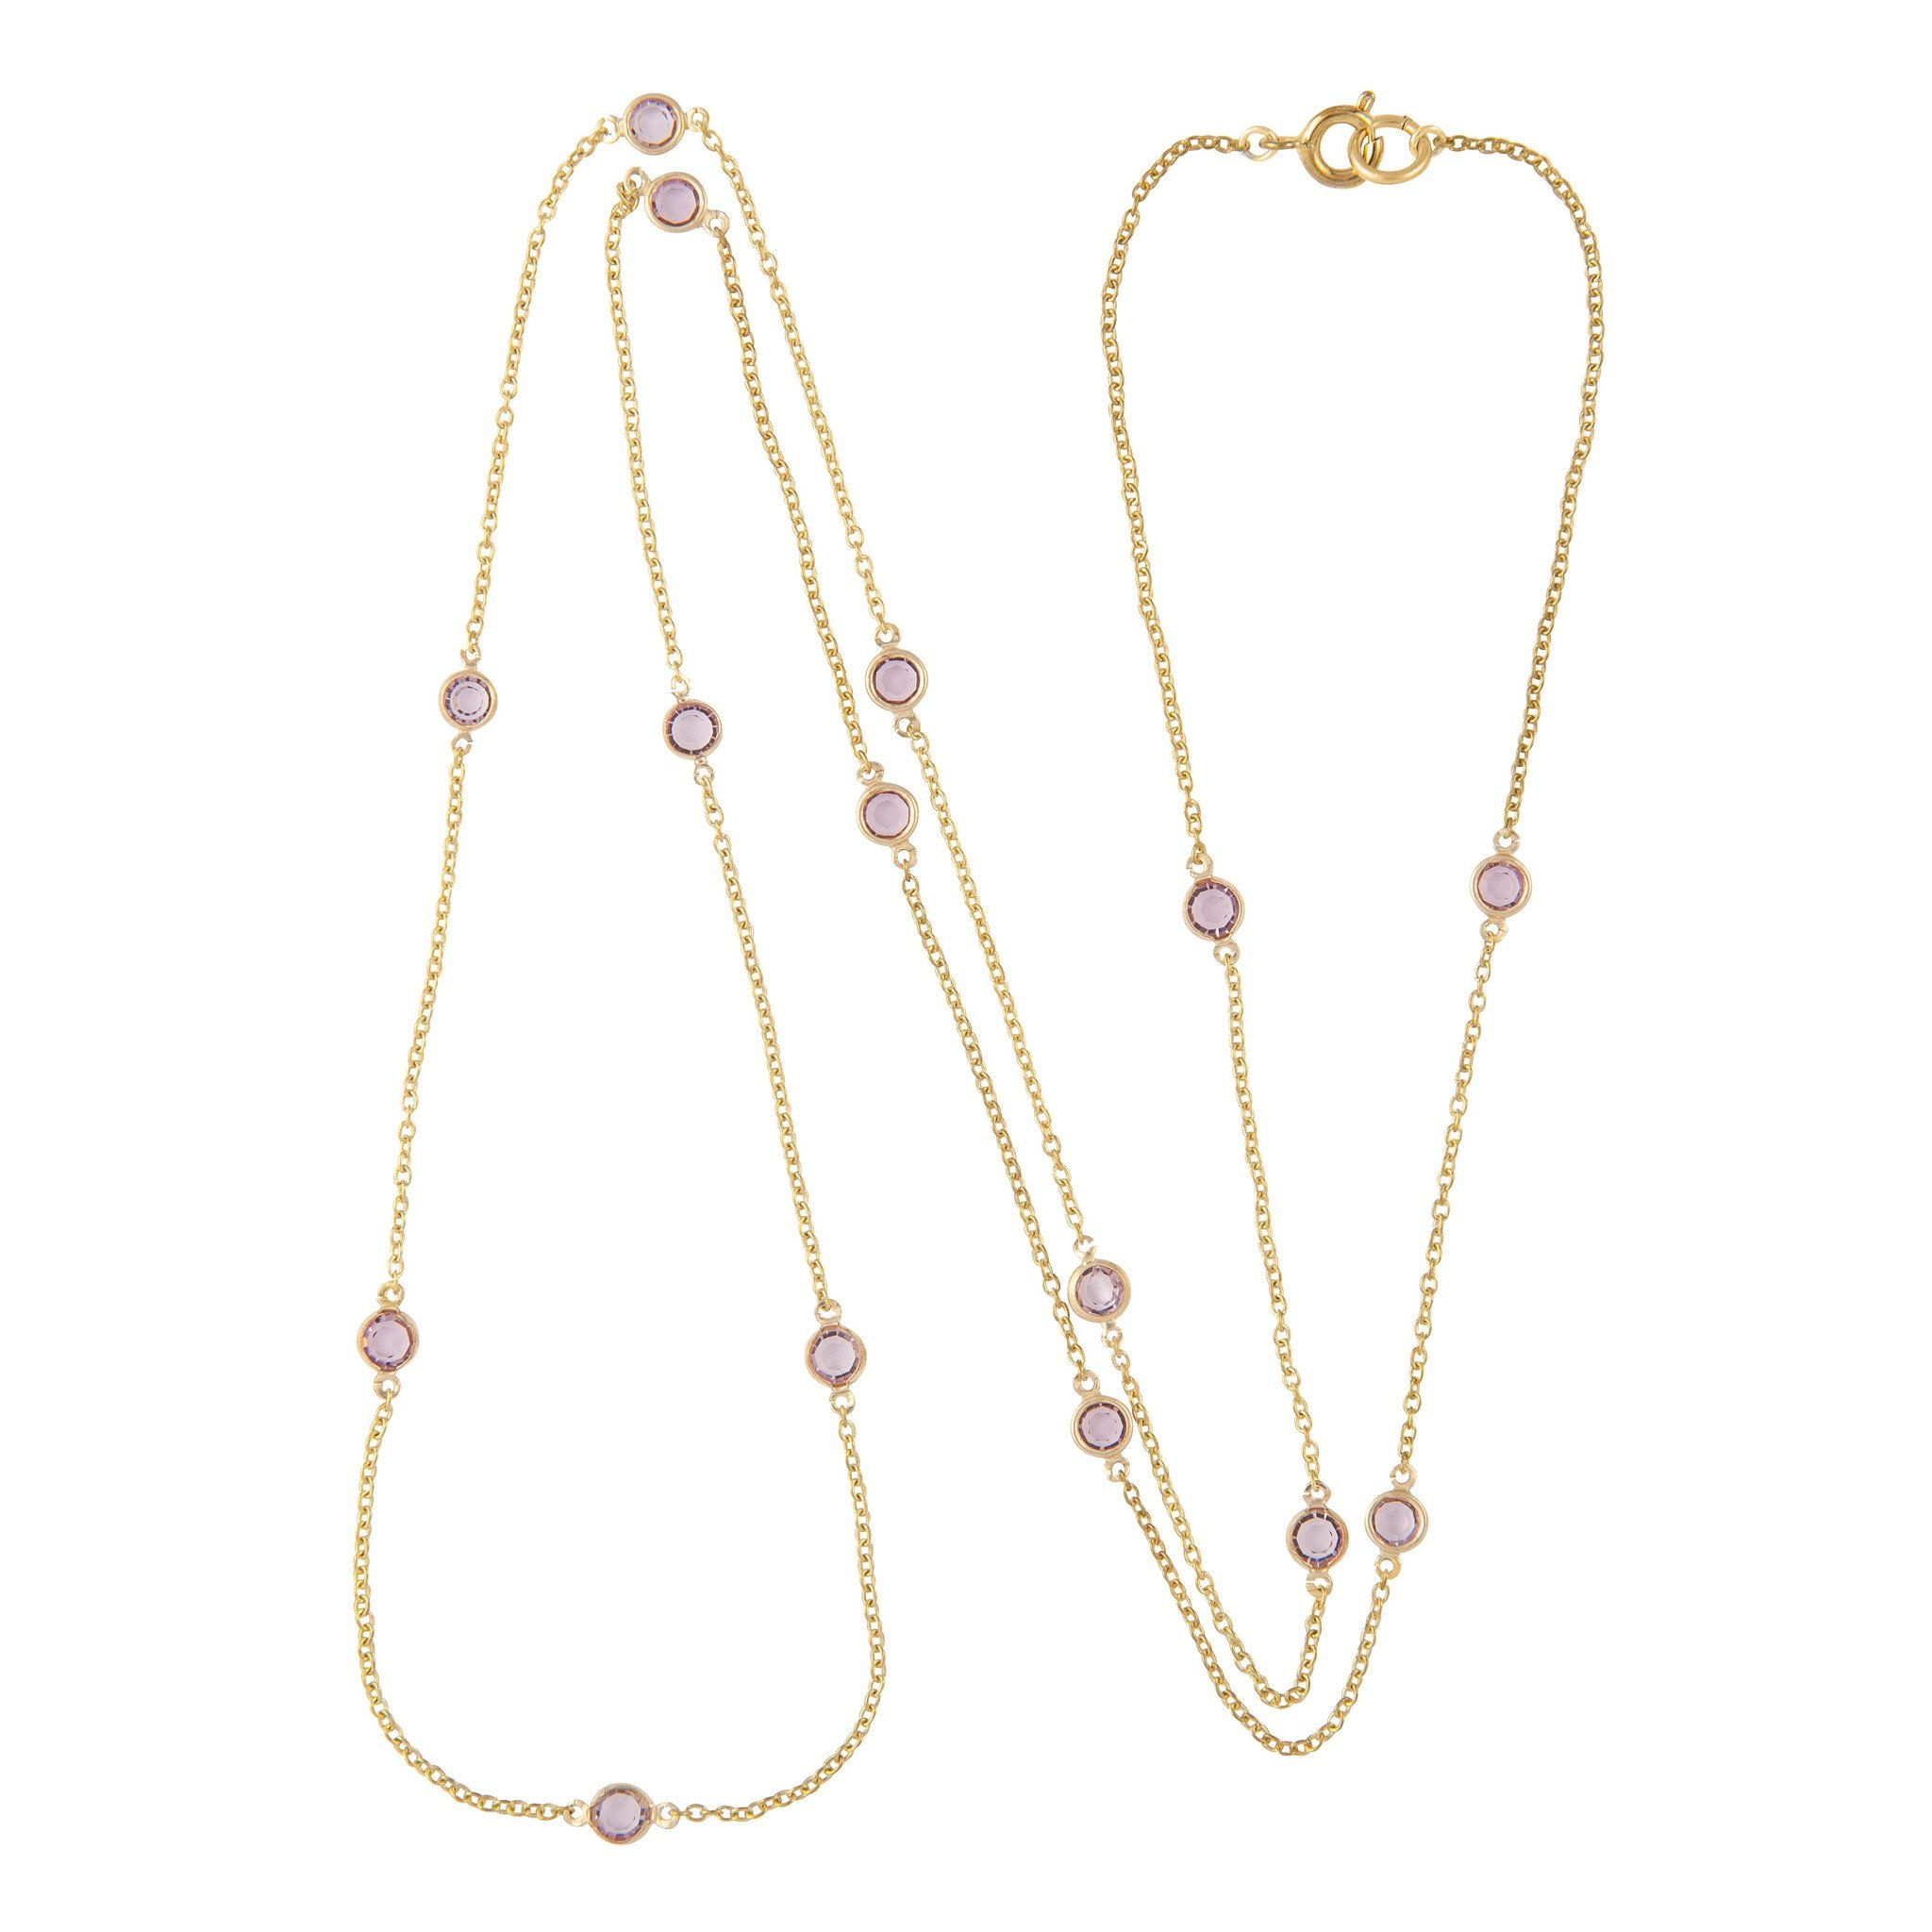 SUSAN CAPLAN CONTEMPORARY 18Ct Gold Plated Swarovski Crystal Necklace